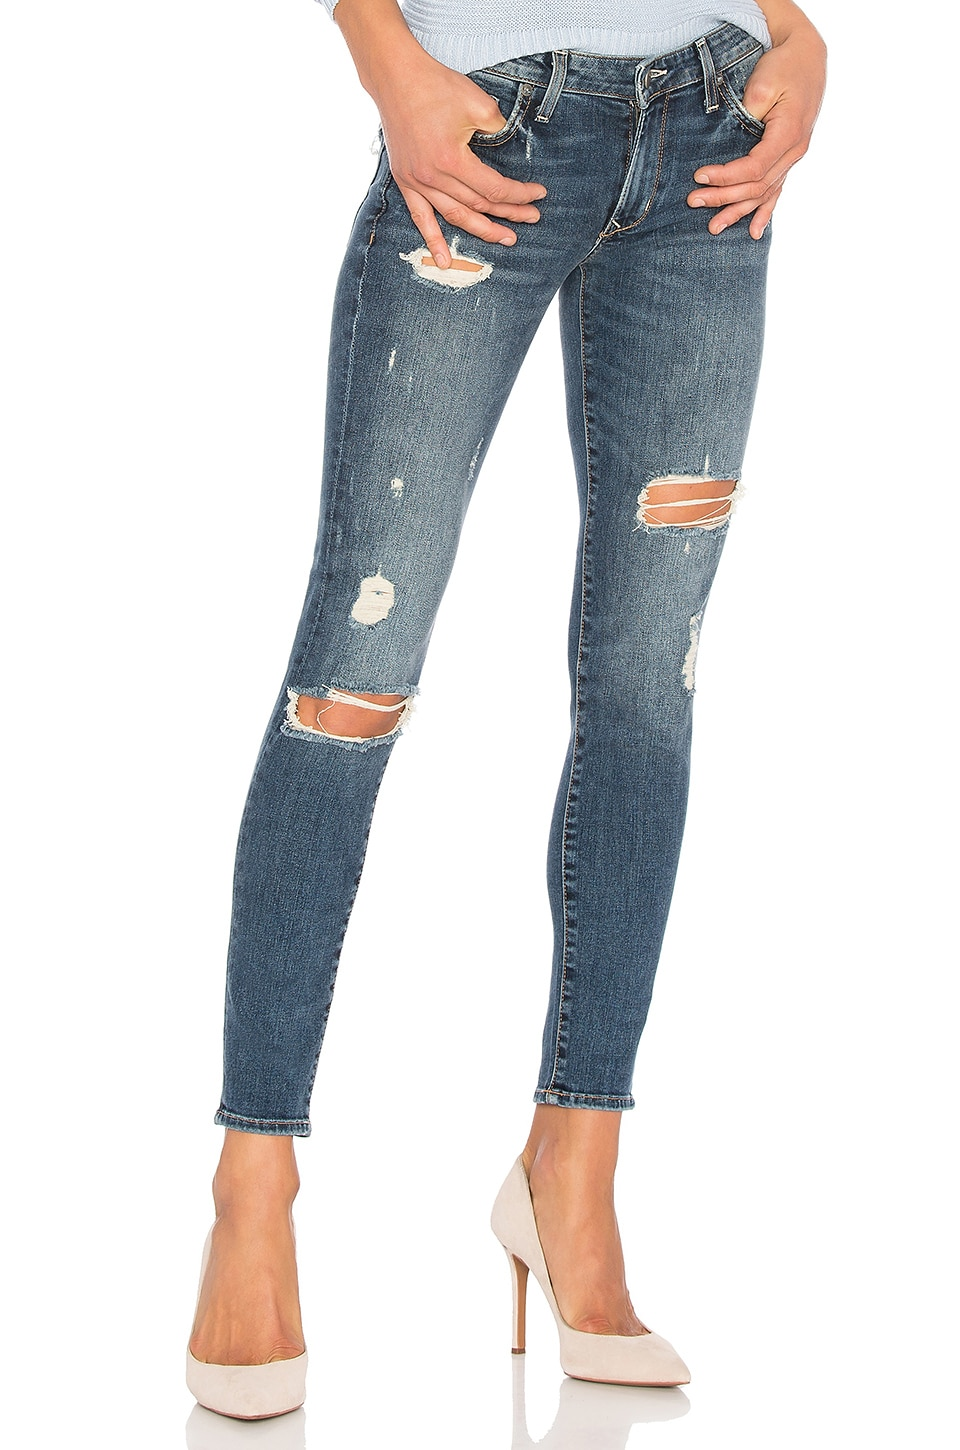 Lovers + Friends x REVOLVE Ricky Skinny Jean in Axis